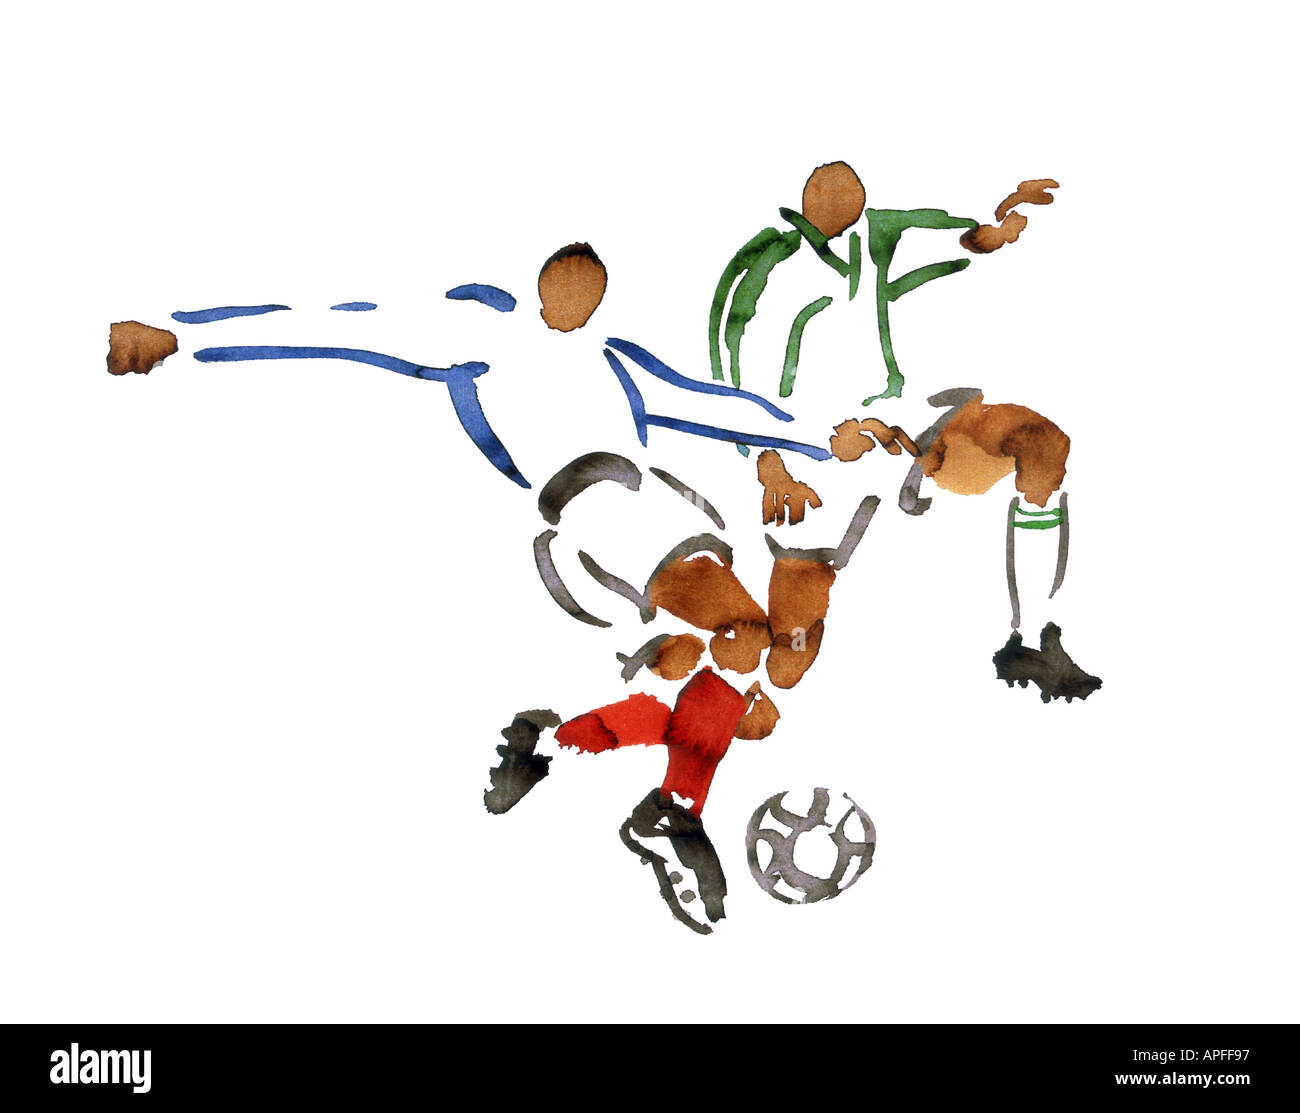 Illustrations sport sports d'Équipe football soccer Ball Jeux Photo Stock